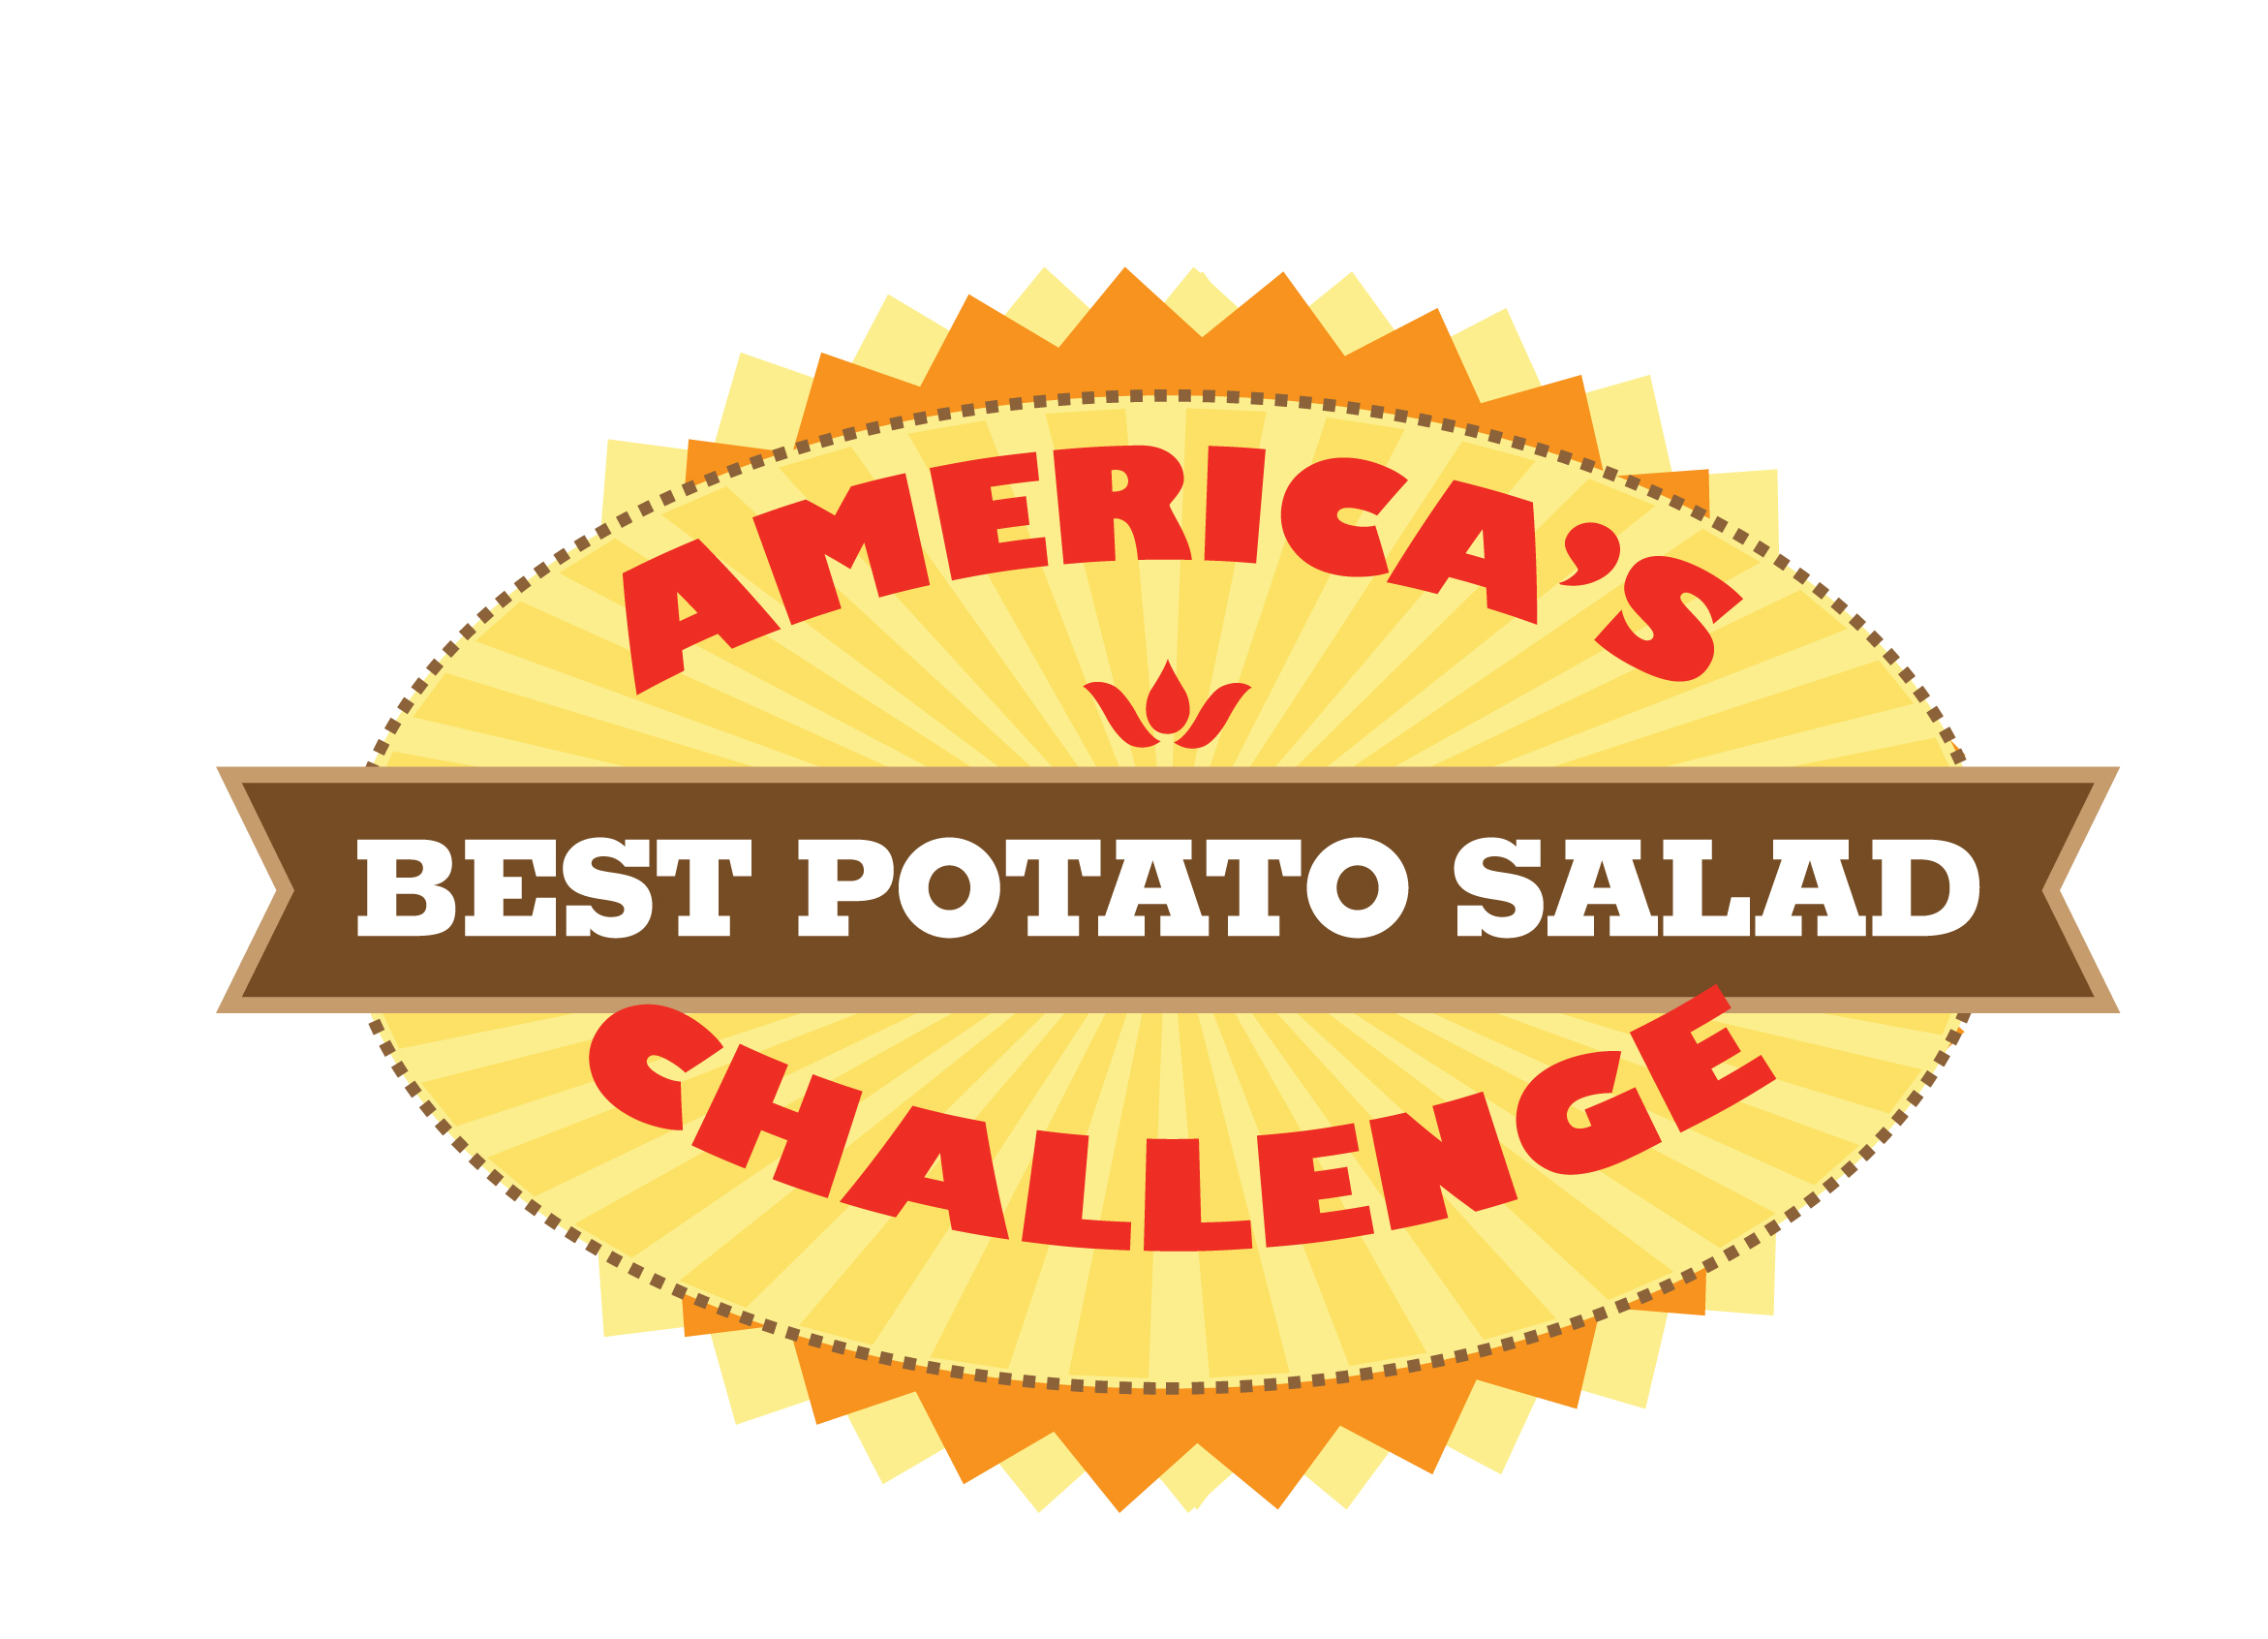 ... 10,000 Grand Prize Winner in 'America's Best Potato Salad Challenge